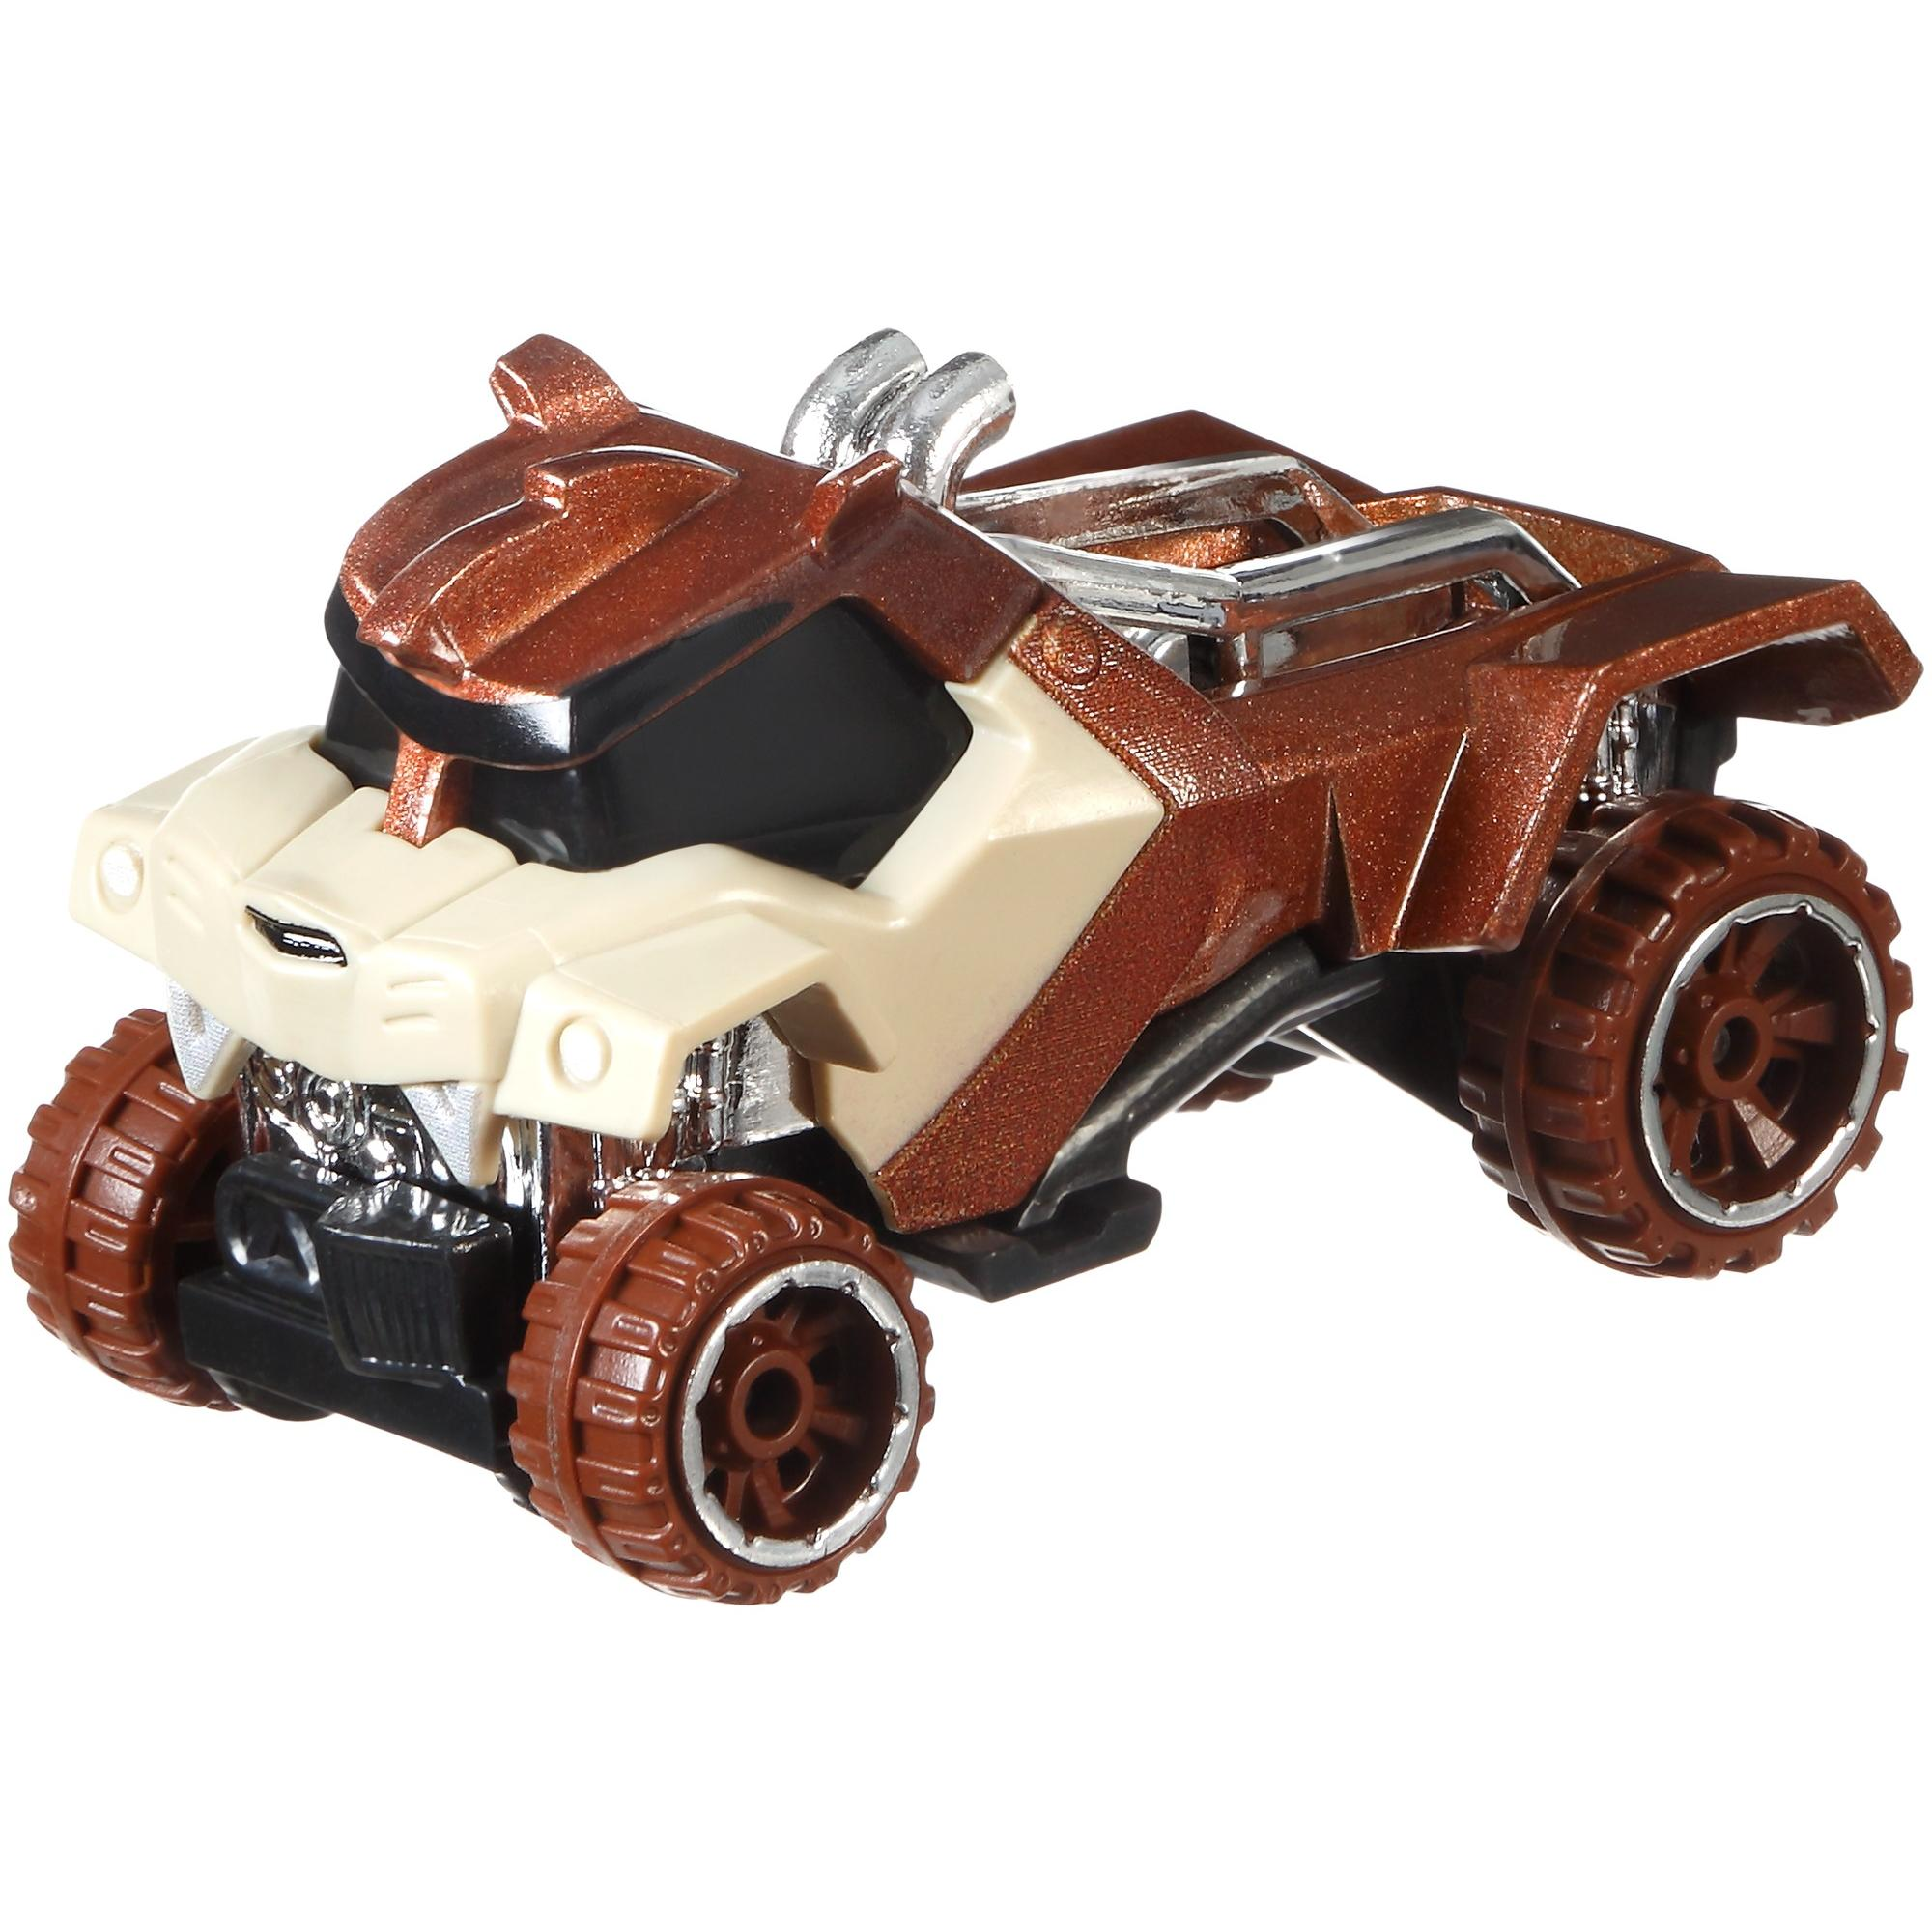 Hot Wheels Tazmanian Devil Character Car by Mattel